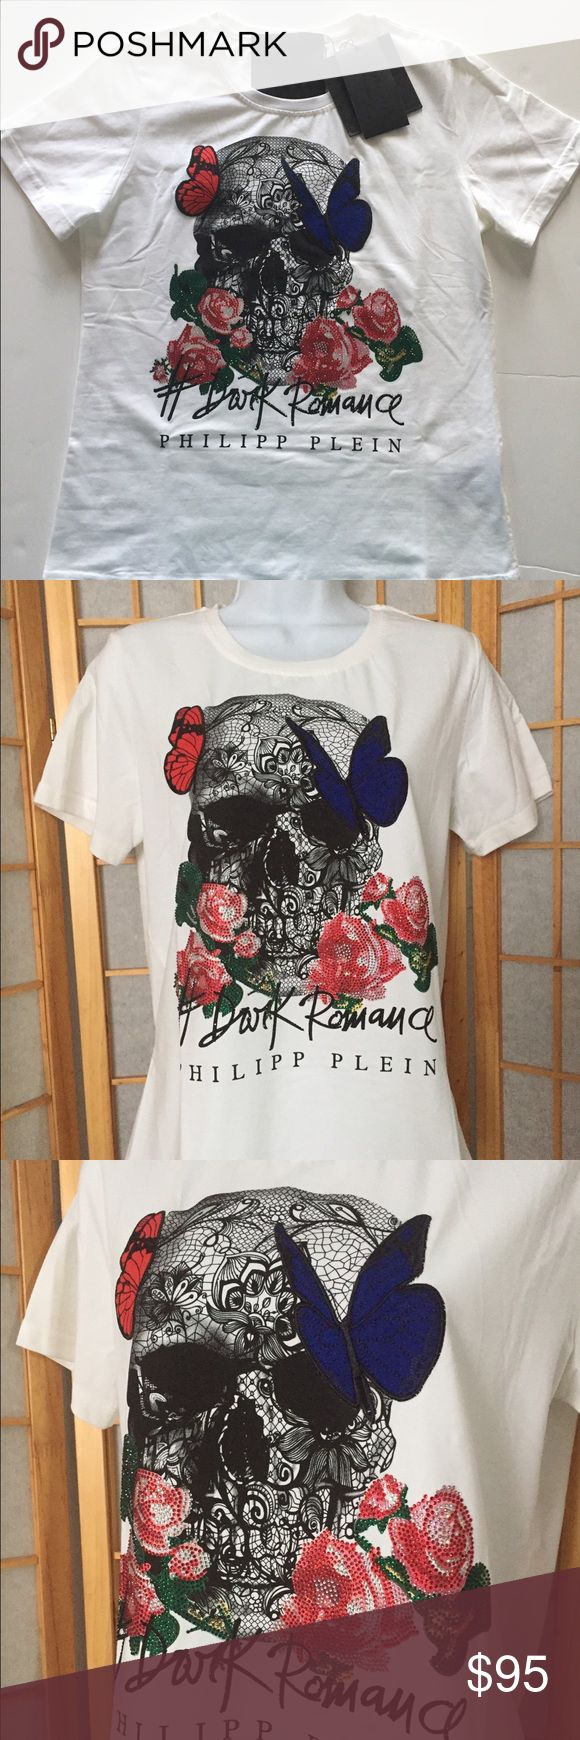 """Philipp Plein """"Dark Romance"""" T Shirt Sz 12 New New With Tags Philipp Plein crew-neck t-shirt Sz 12. On front- a large scull with butterflies and roses studded with sparkling rhinestones.  Short sleeves. Cotton blend. Length 23"""", sleeve length 7.5"""", shoulder to shoulder 15"""", armpit to armpit 18"""". The material is stretching. Looks amazing!!!  Was bought at designer 's sample sale in NYC. Philipp Plein Tops Tees - Short Sleeve"""